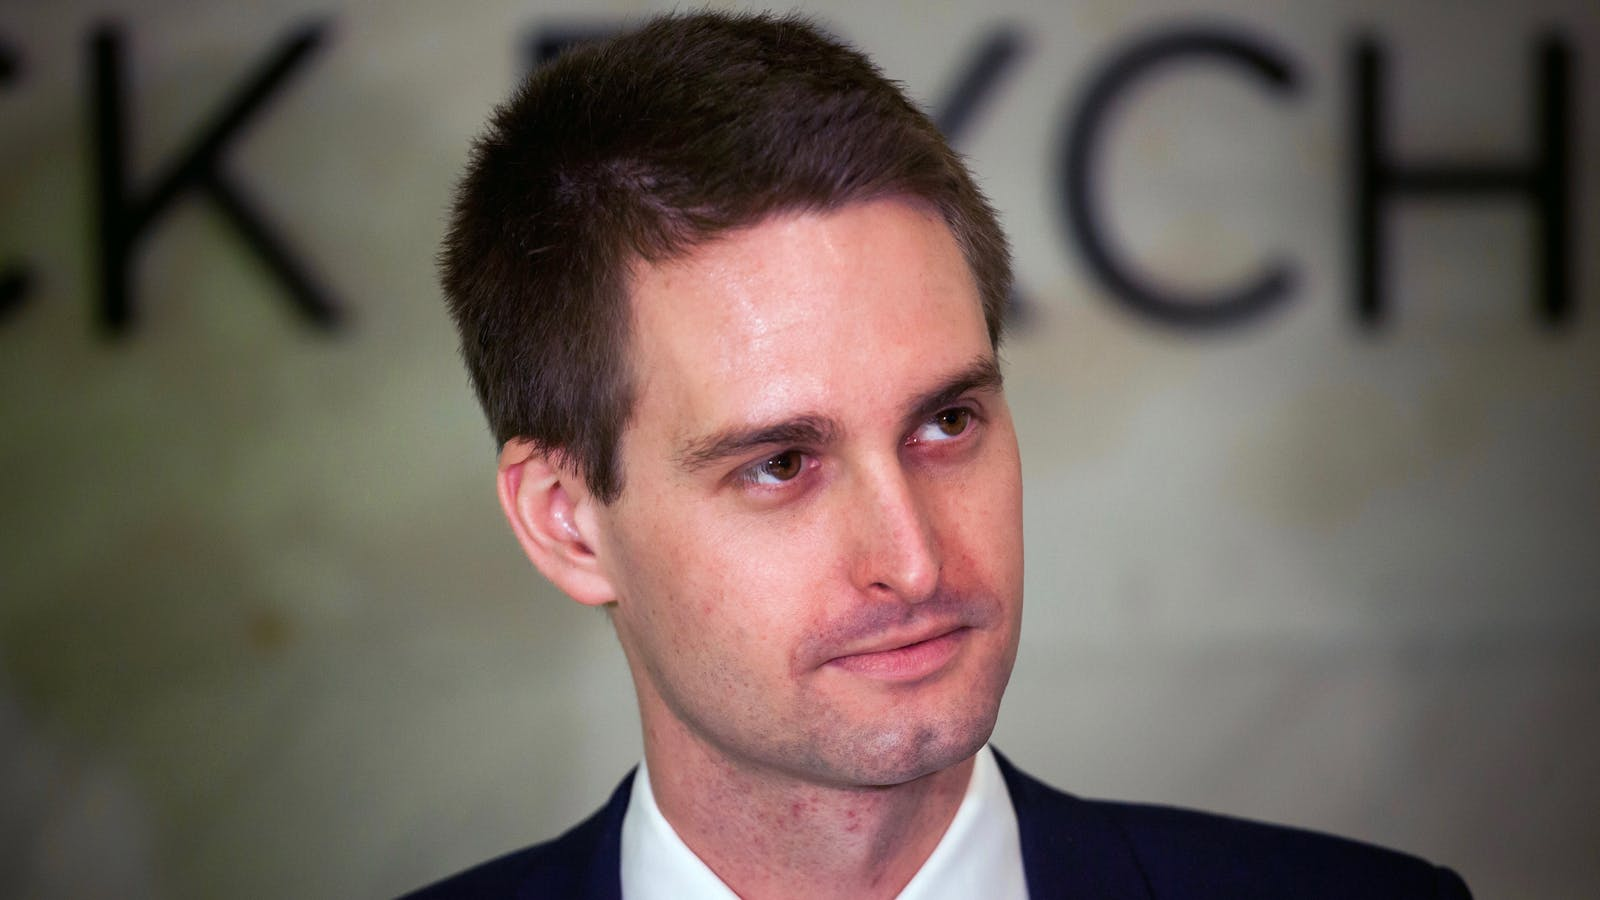 Snap CEO Evan Spiegel. Photo by Bloomberg.